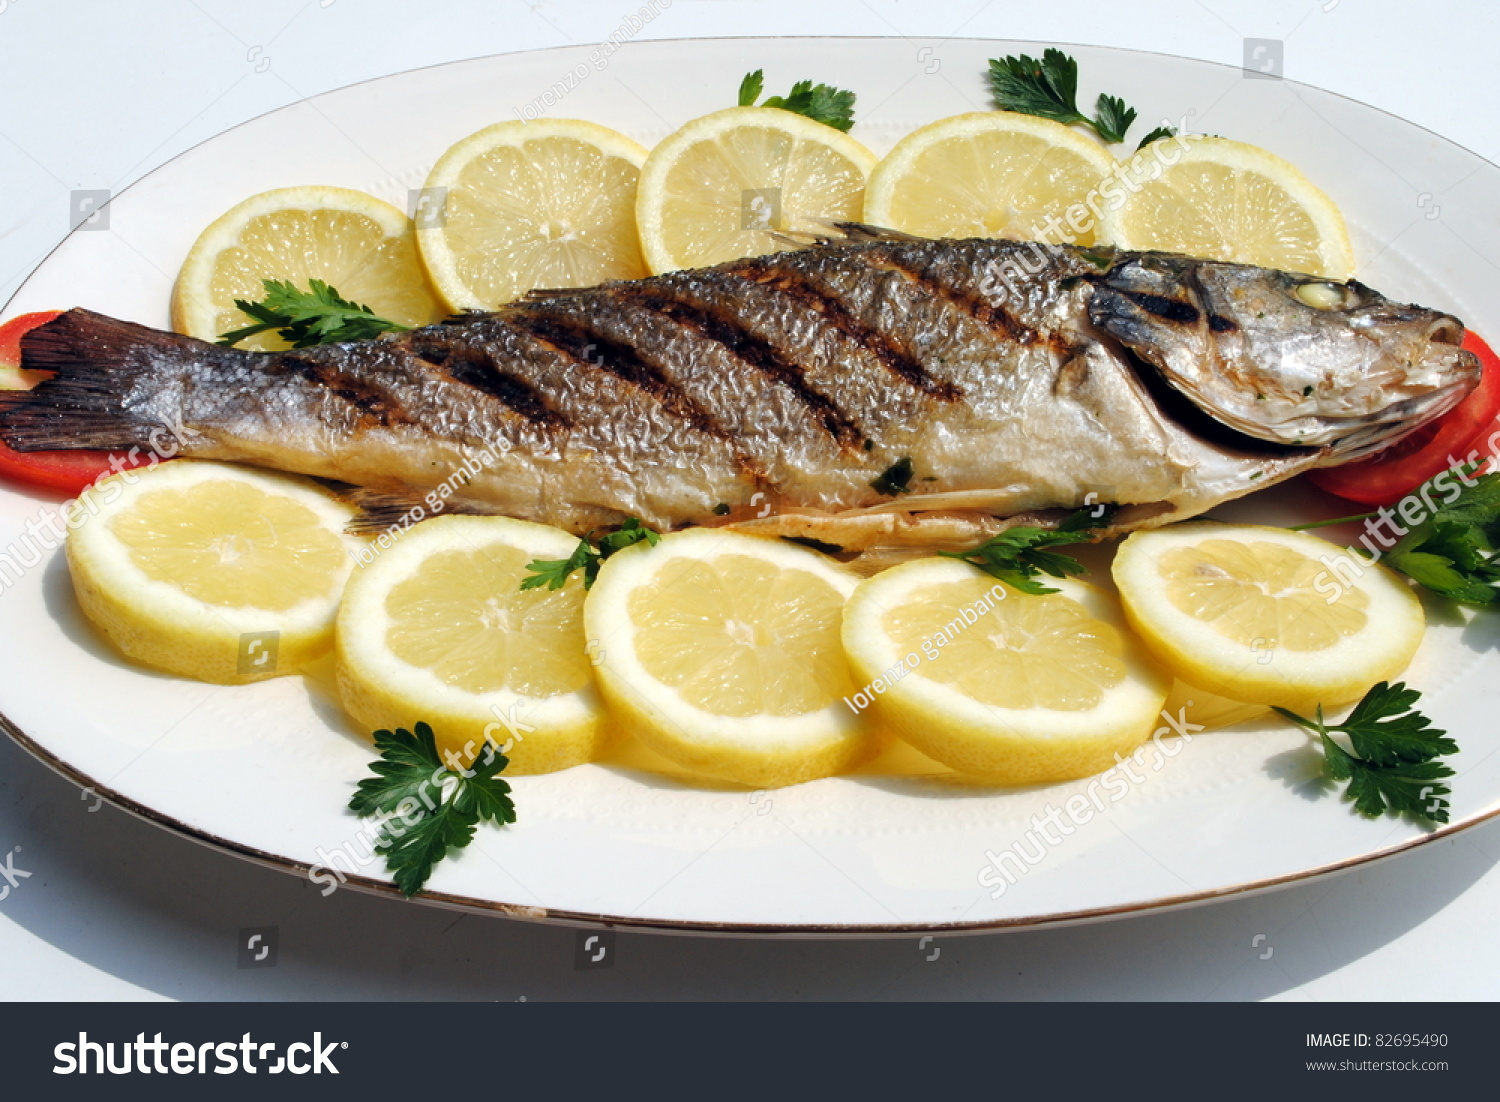 how to preasure cook fish